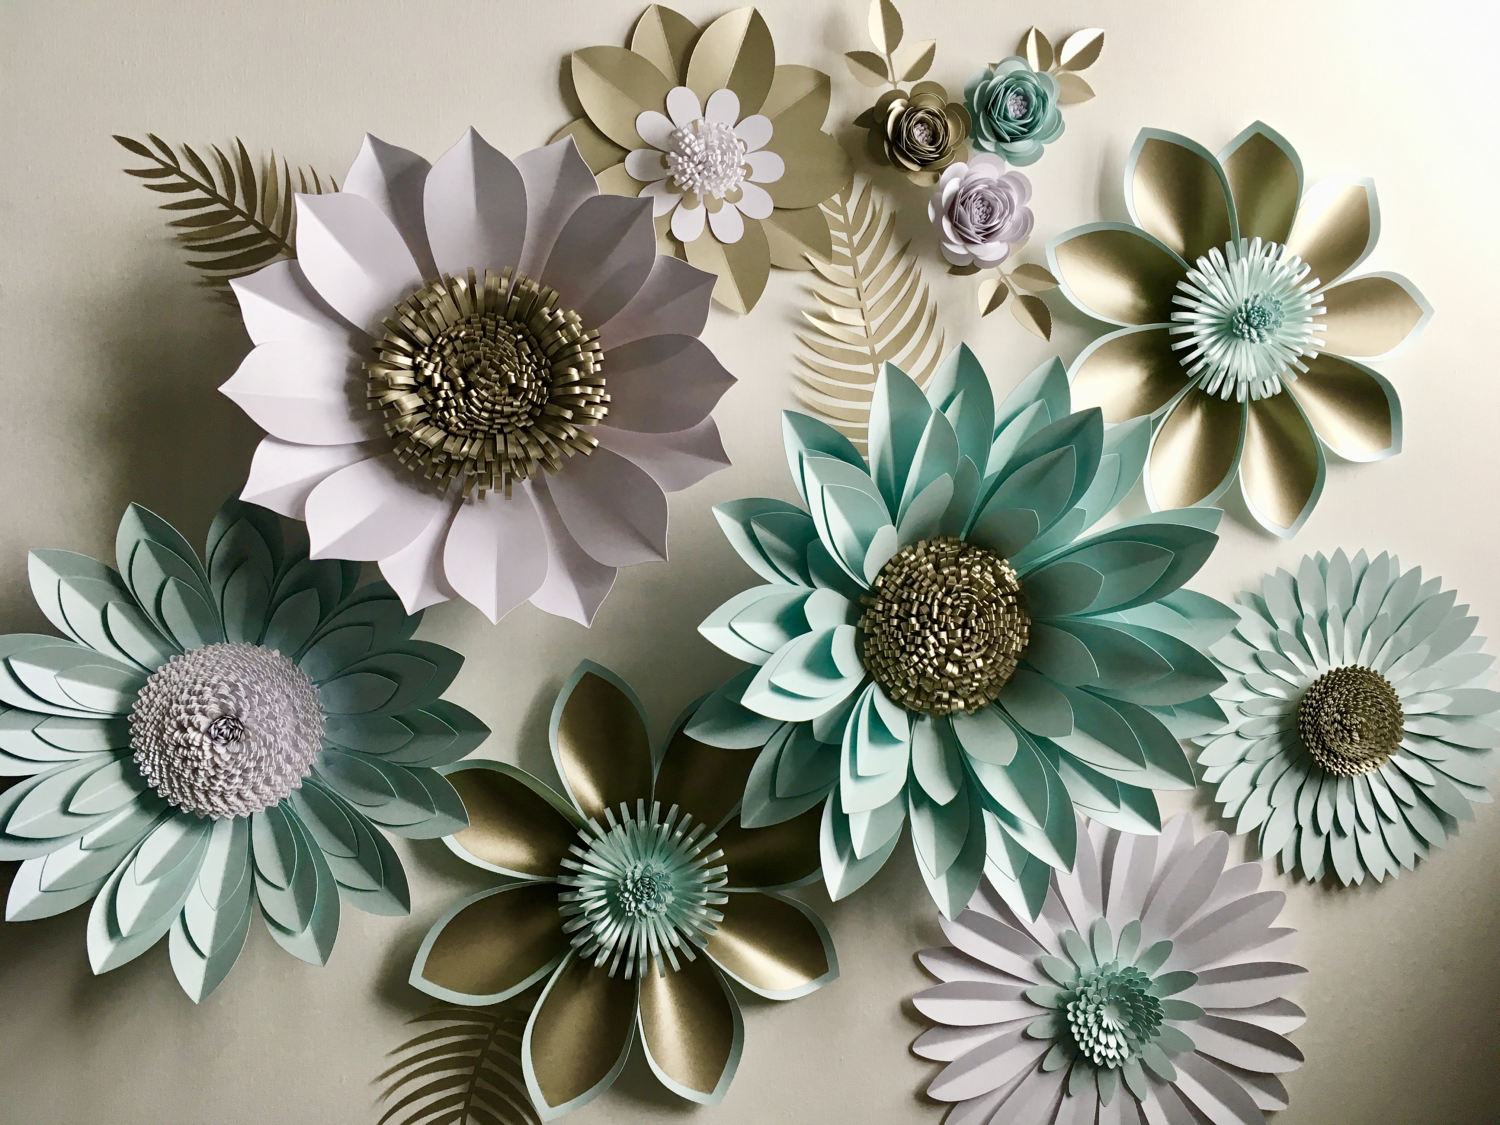 Pearl And Aquamarine Giant Paper Flower Backdrop Wall Decoration Photography Prop